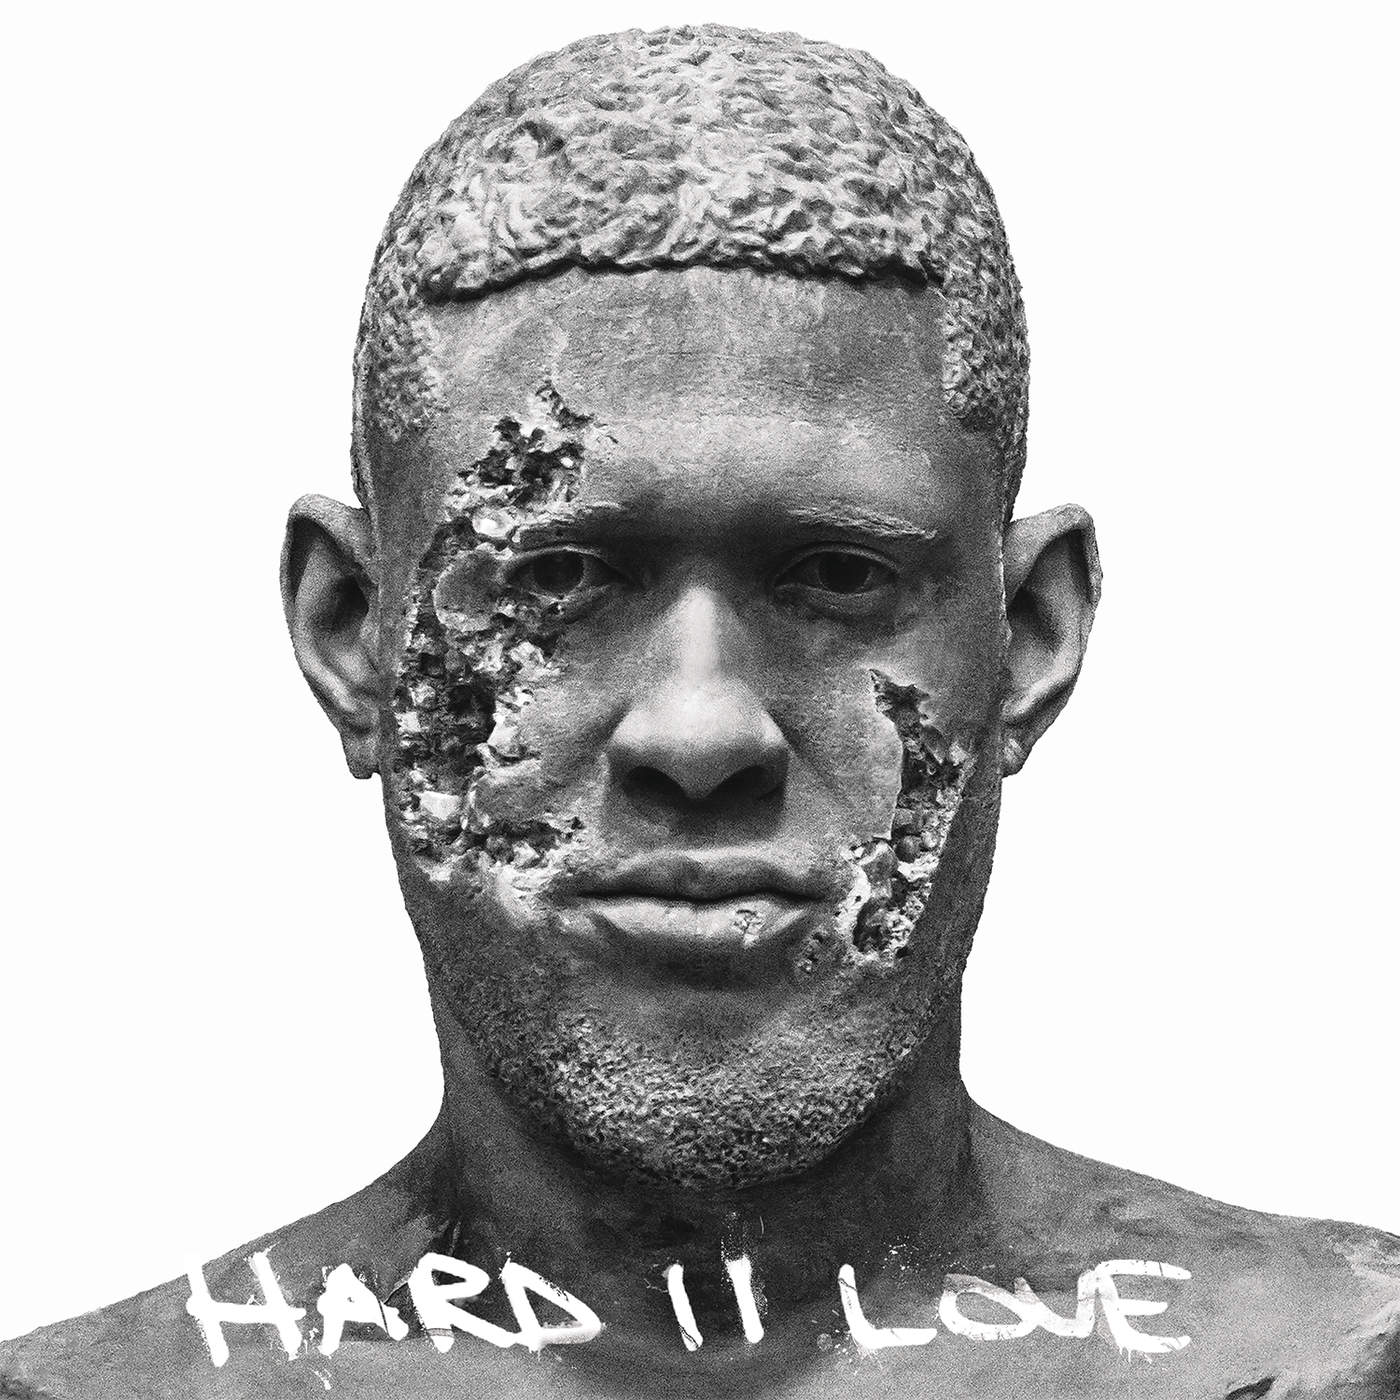 Track Review: Usher ft. Young Thug, 'No Limit'